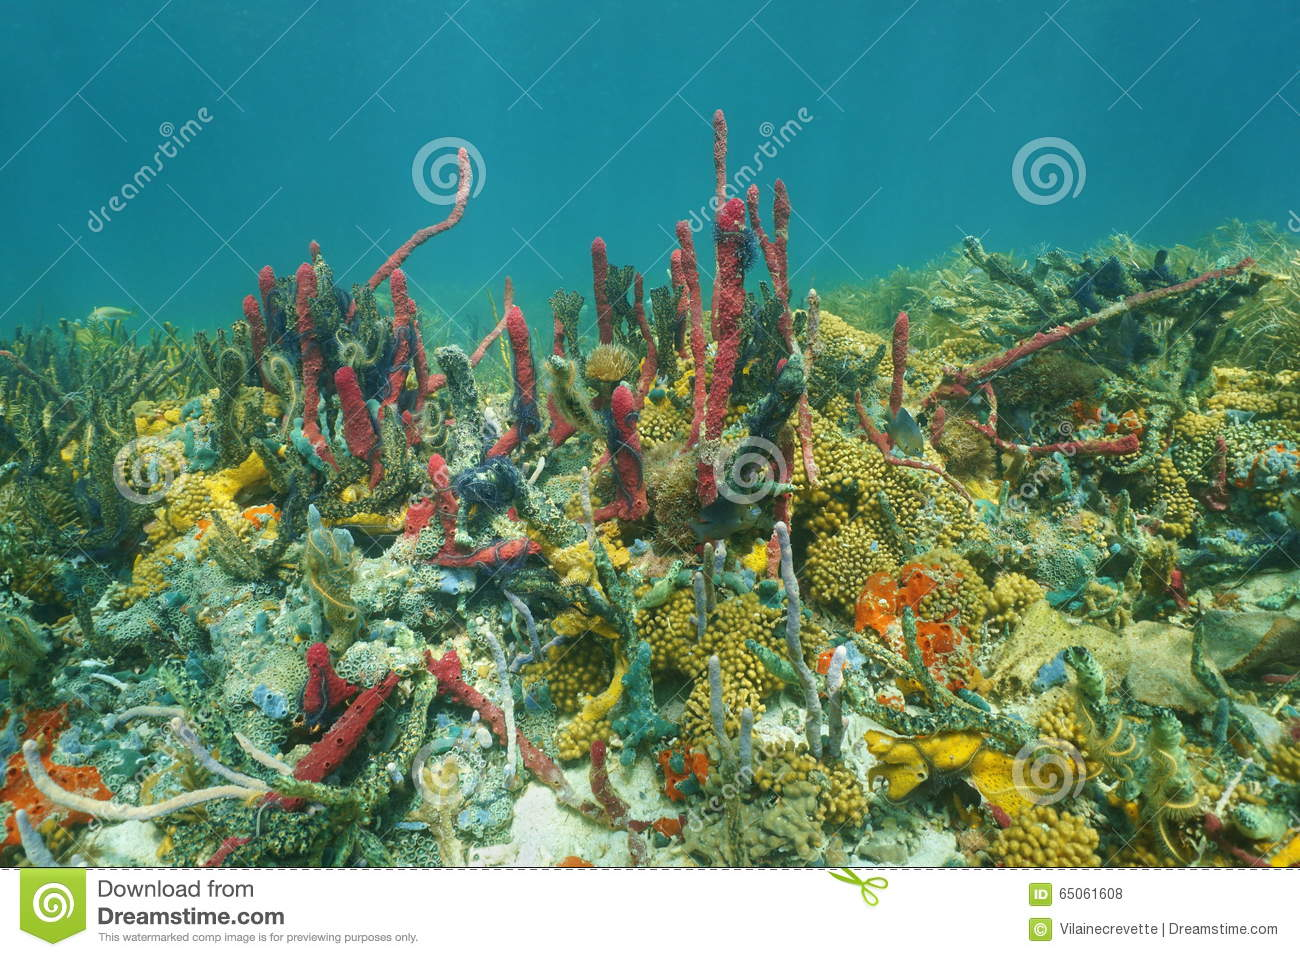 Colorful Underwater Marine Life In A Coral Reef With Water ... |Colorful Underwater Life